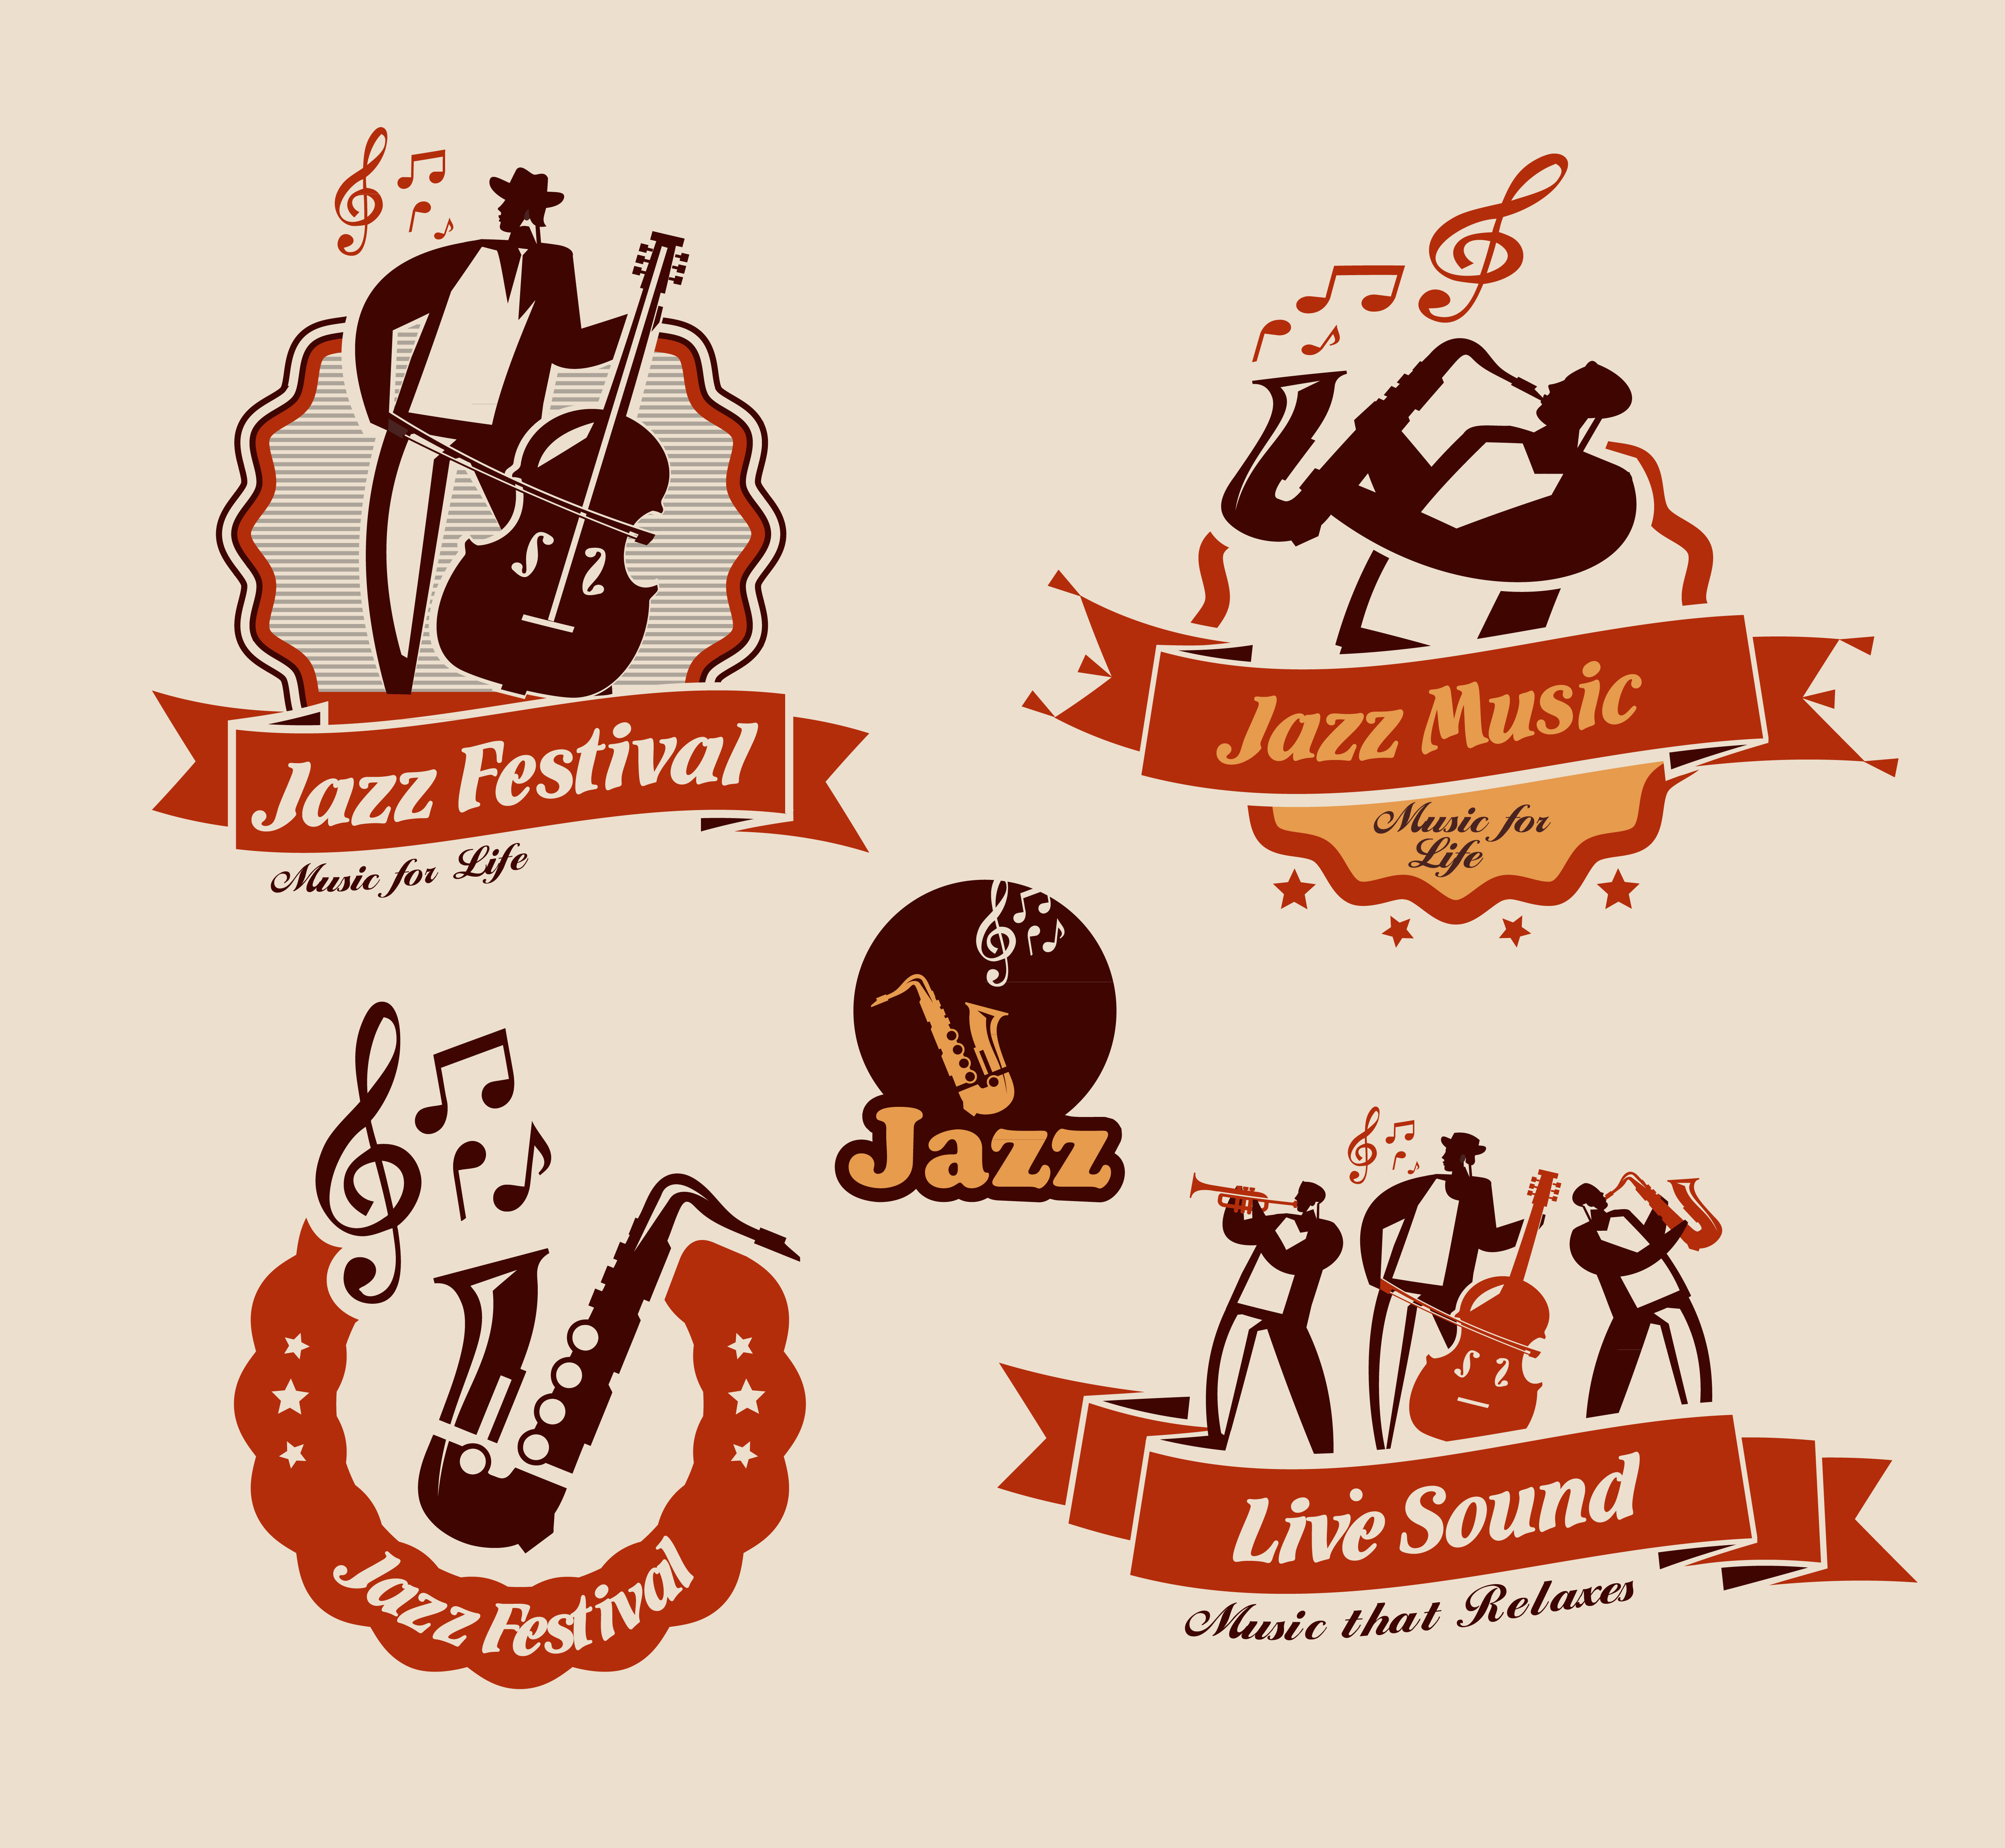 Get Your Tickets Now for NYC Winter Jazzfest in January!